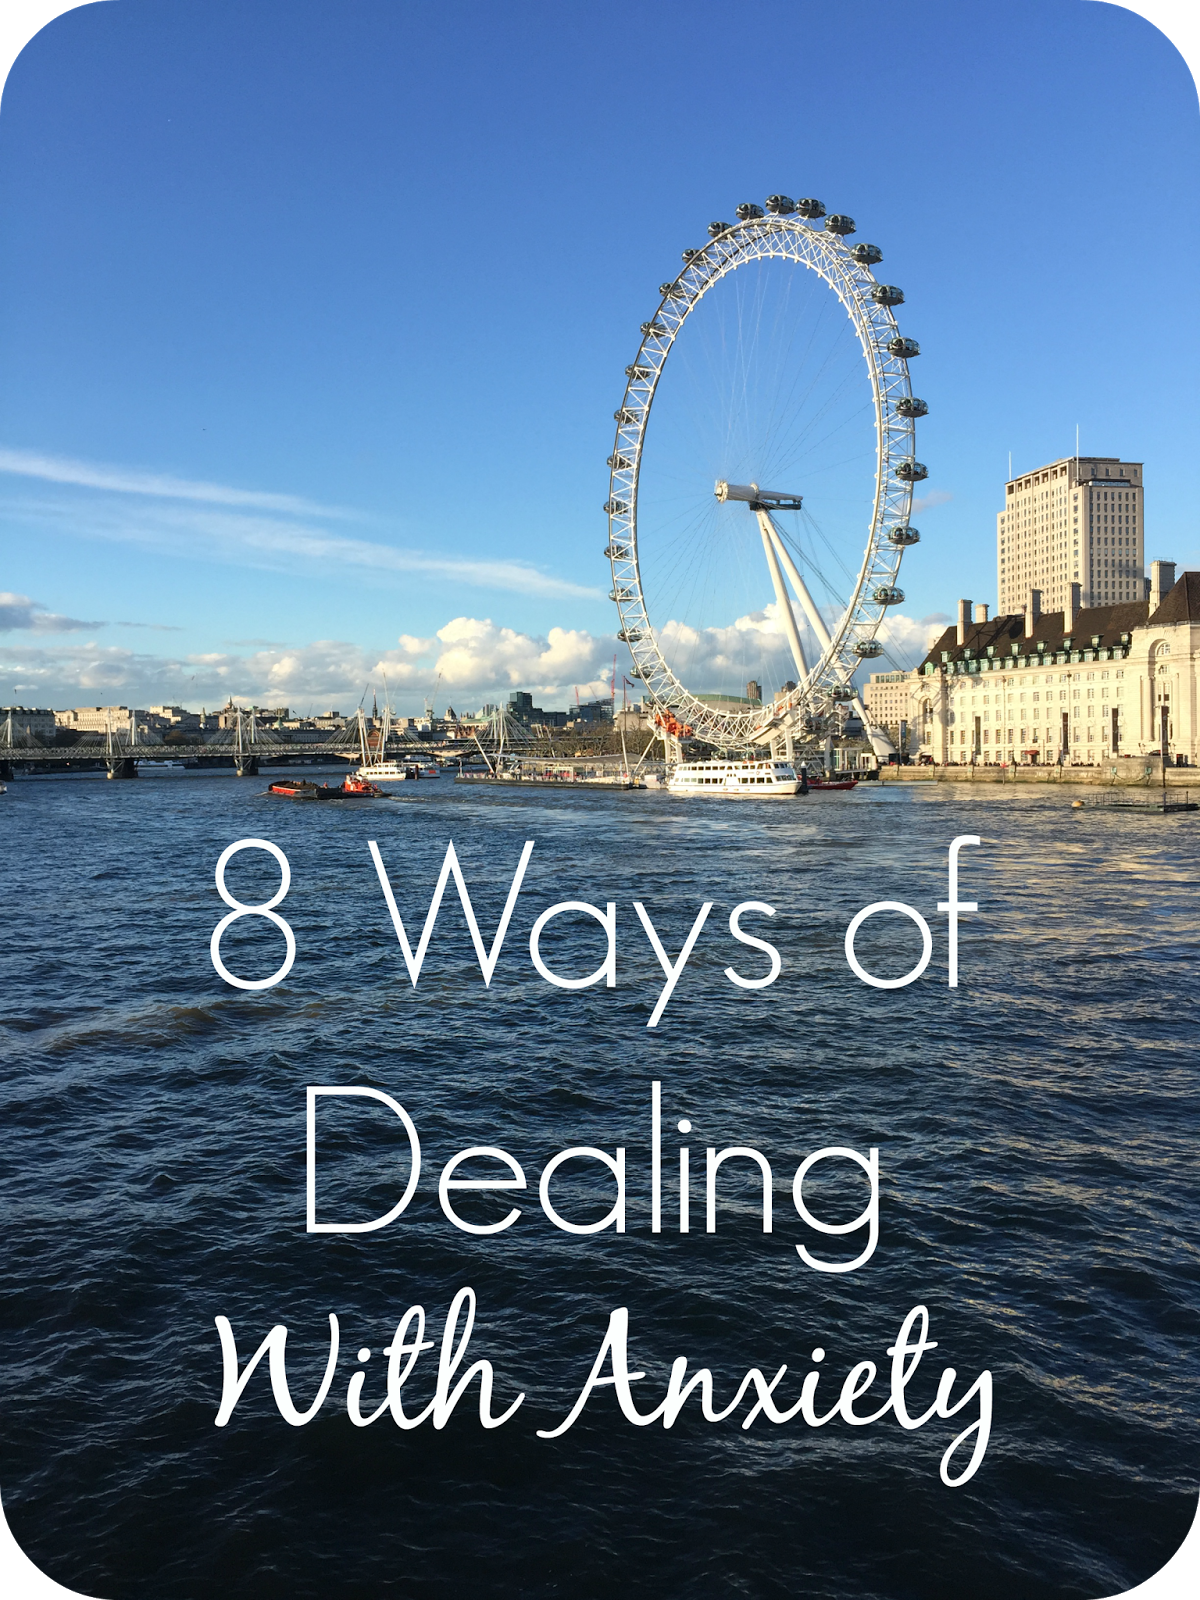 8 ways of dealing with anxiety